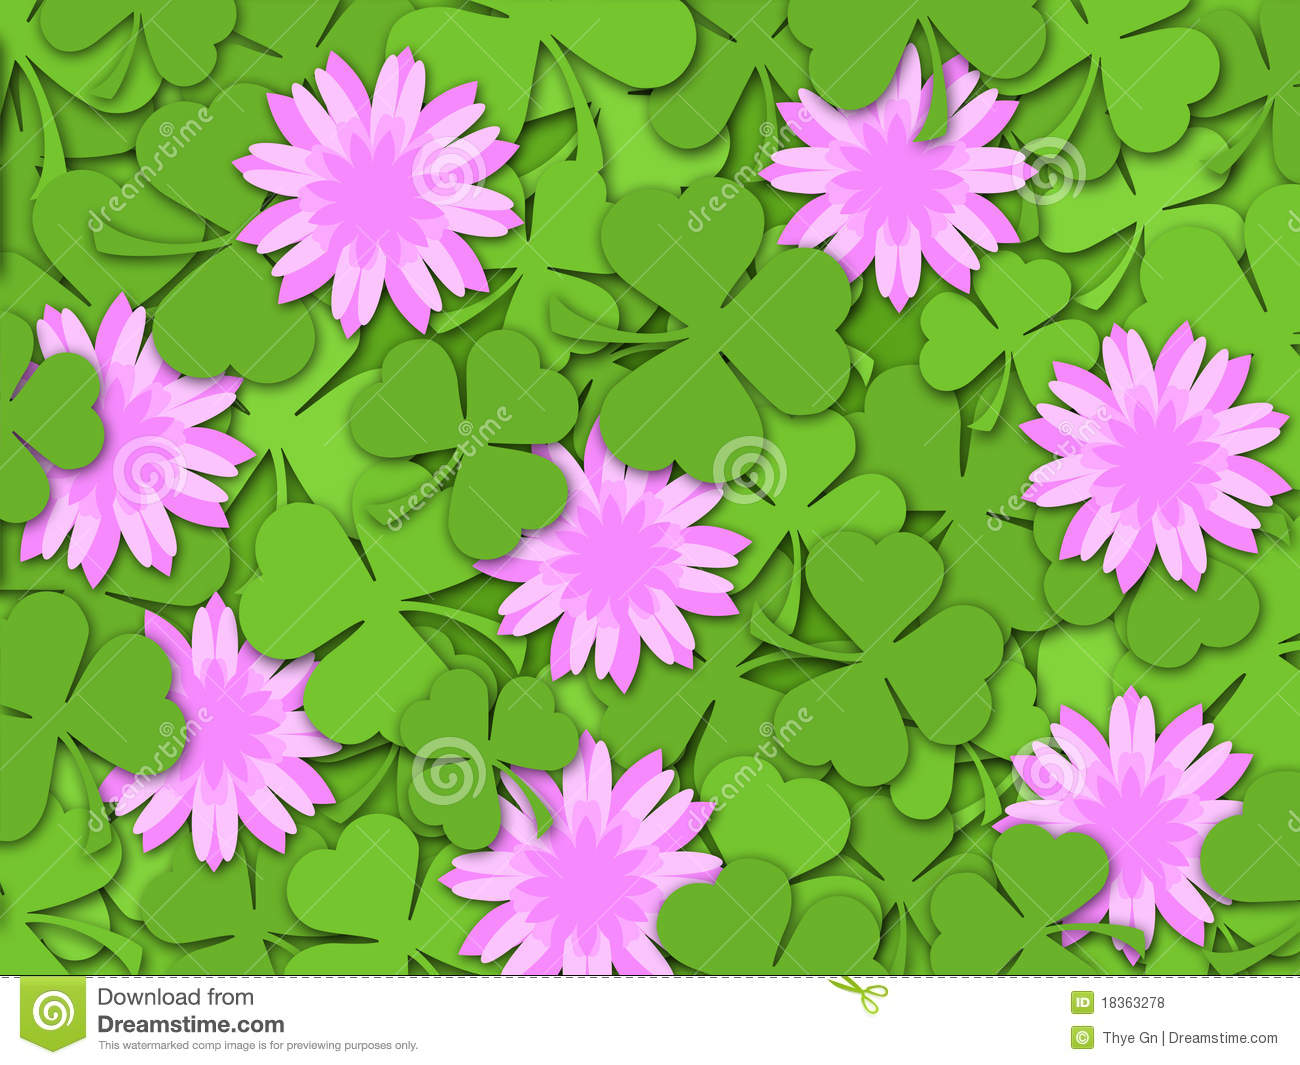 Flowers paper cutting stock image image of effects 37573137 shamrock paper cutting clover flowers background royalty free stock photos mightylinksfo